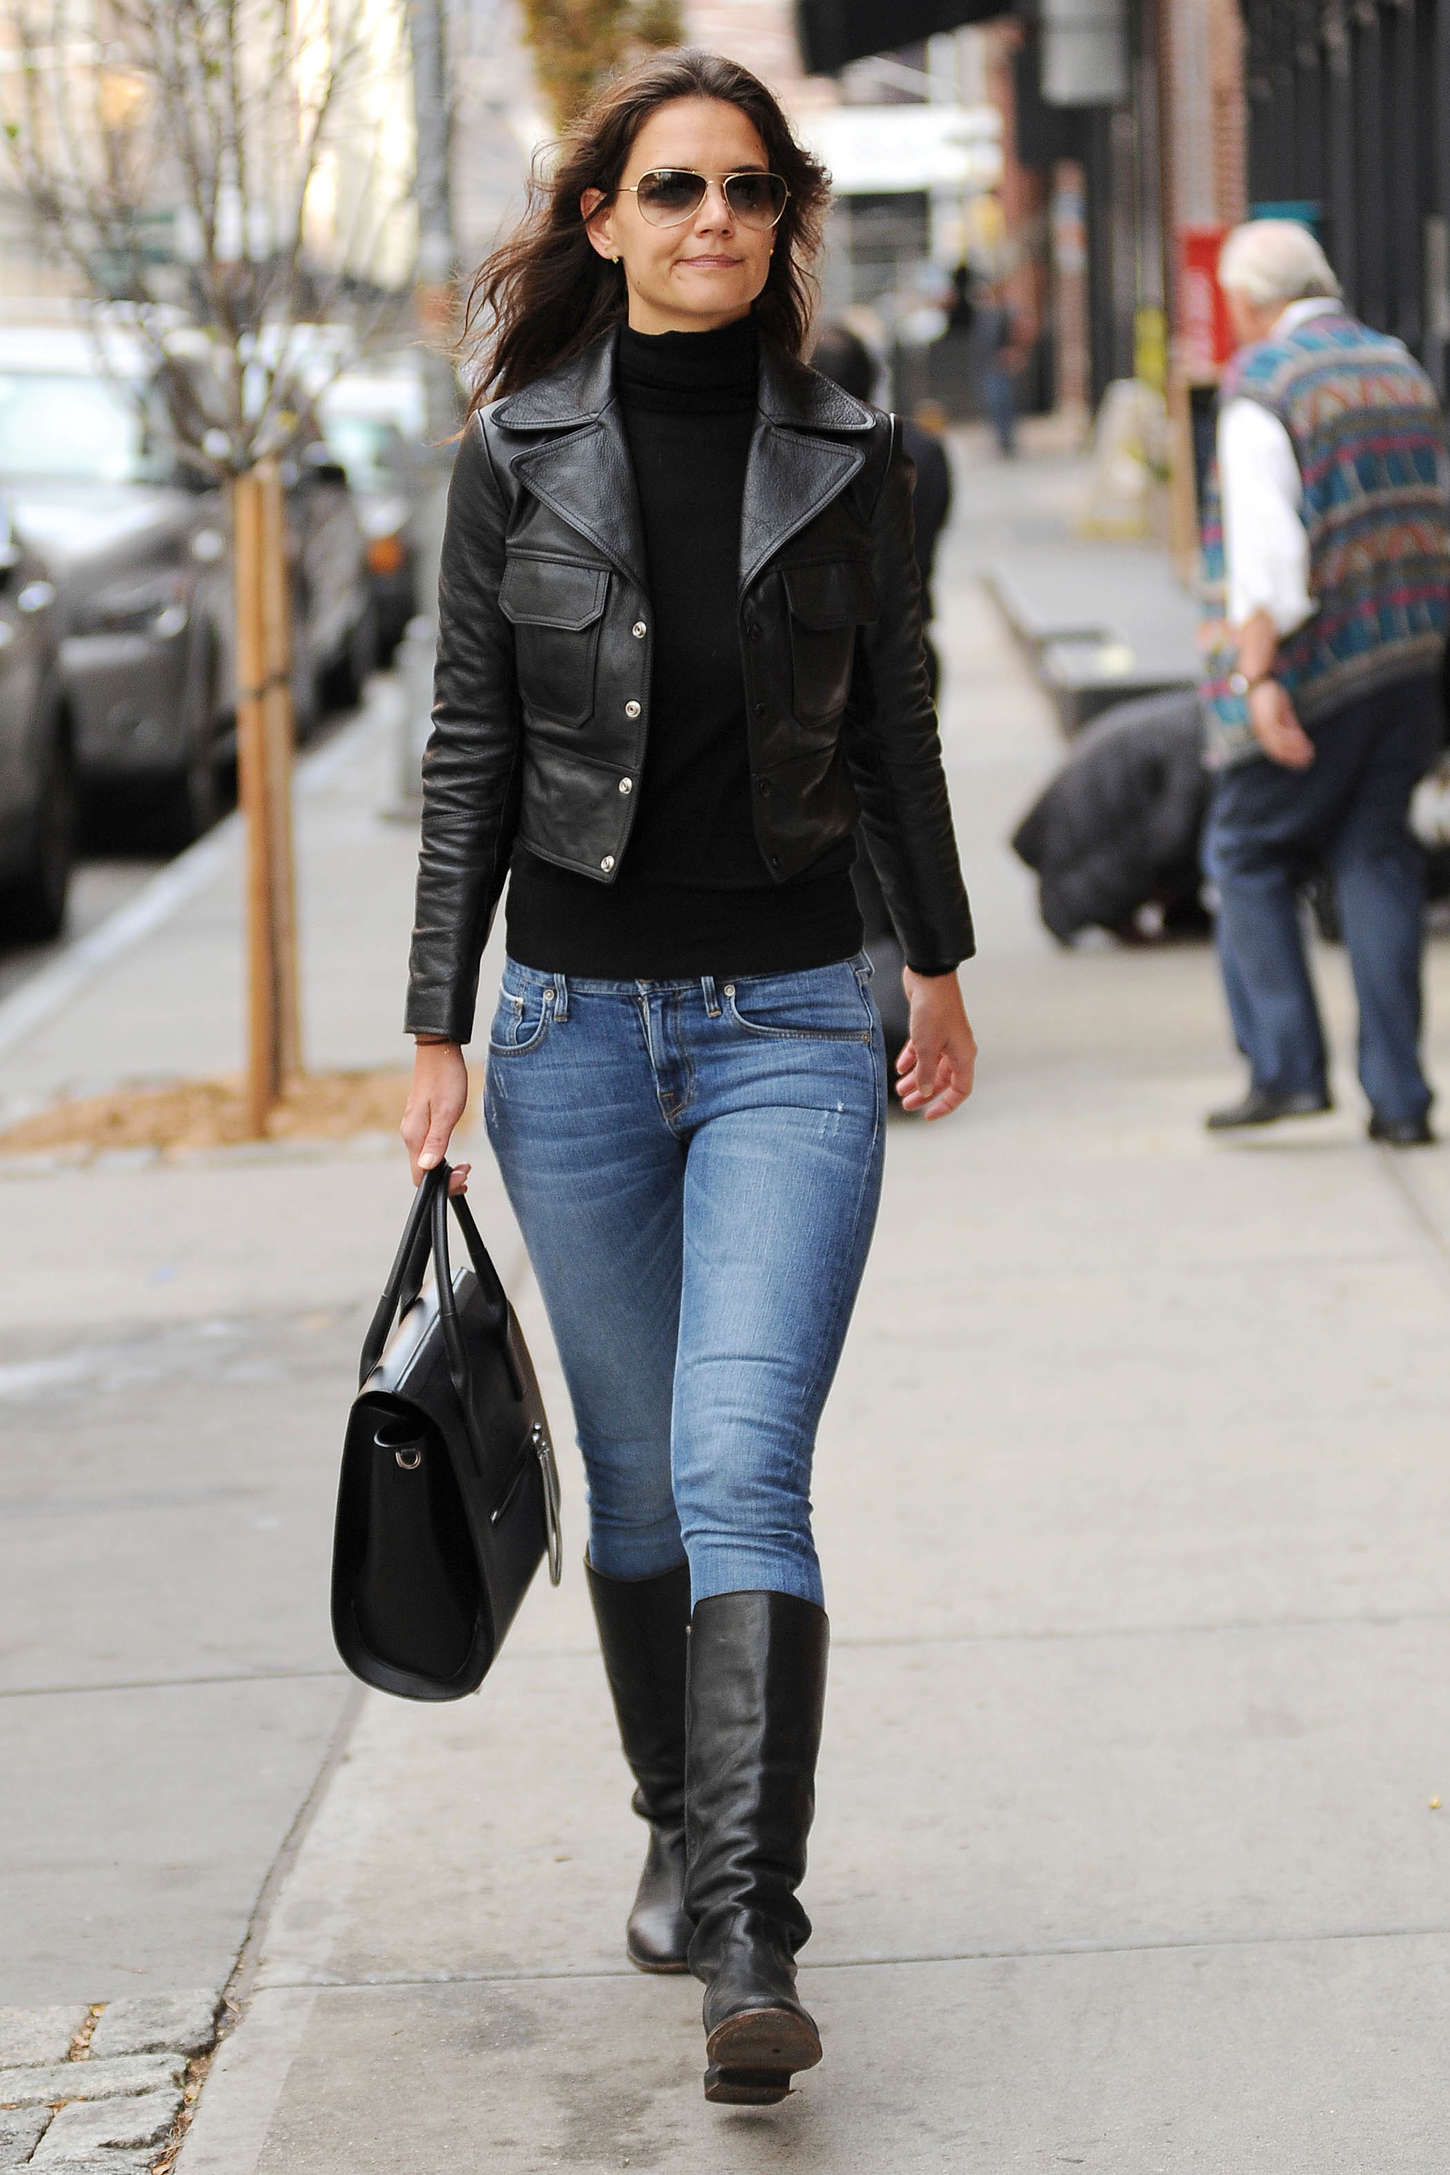 Katie Holmes In Jeans And Boots 22 Gotceleb